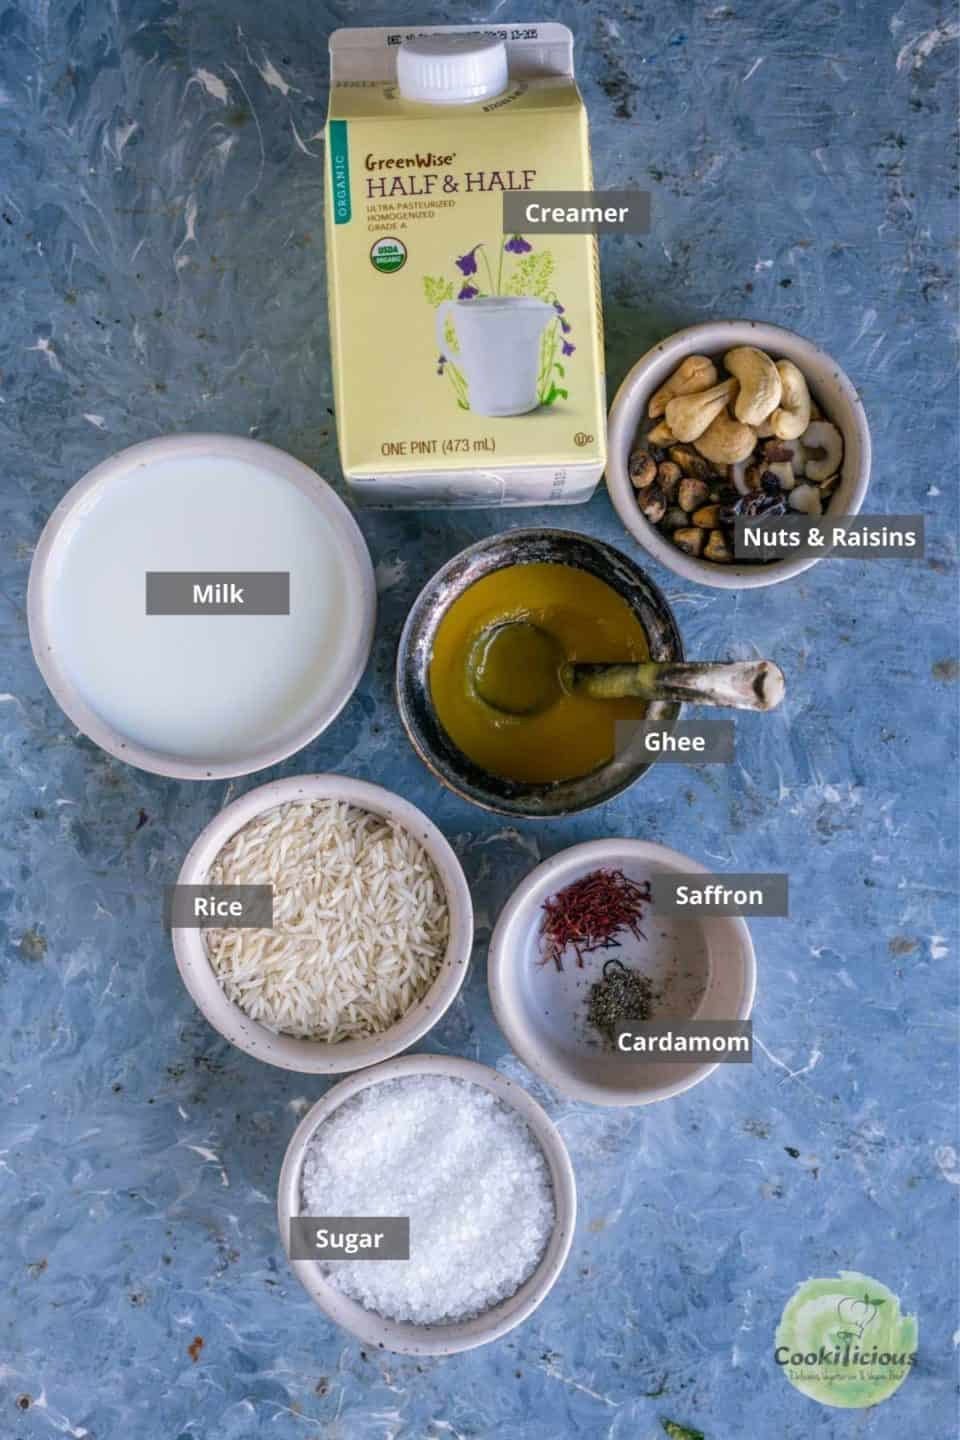 all ingredients needed to make paal payasam or kheer placed on a table with labels on them